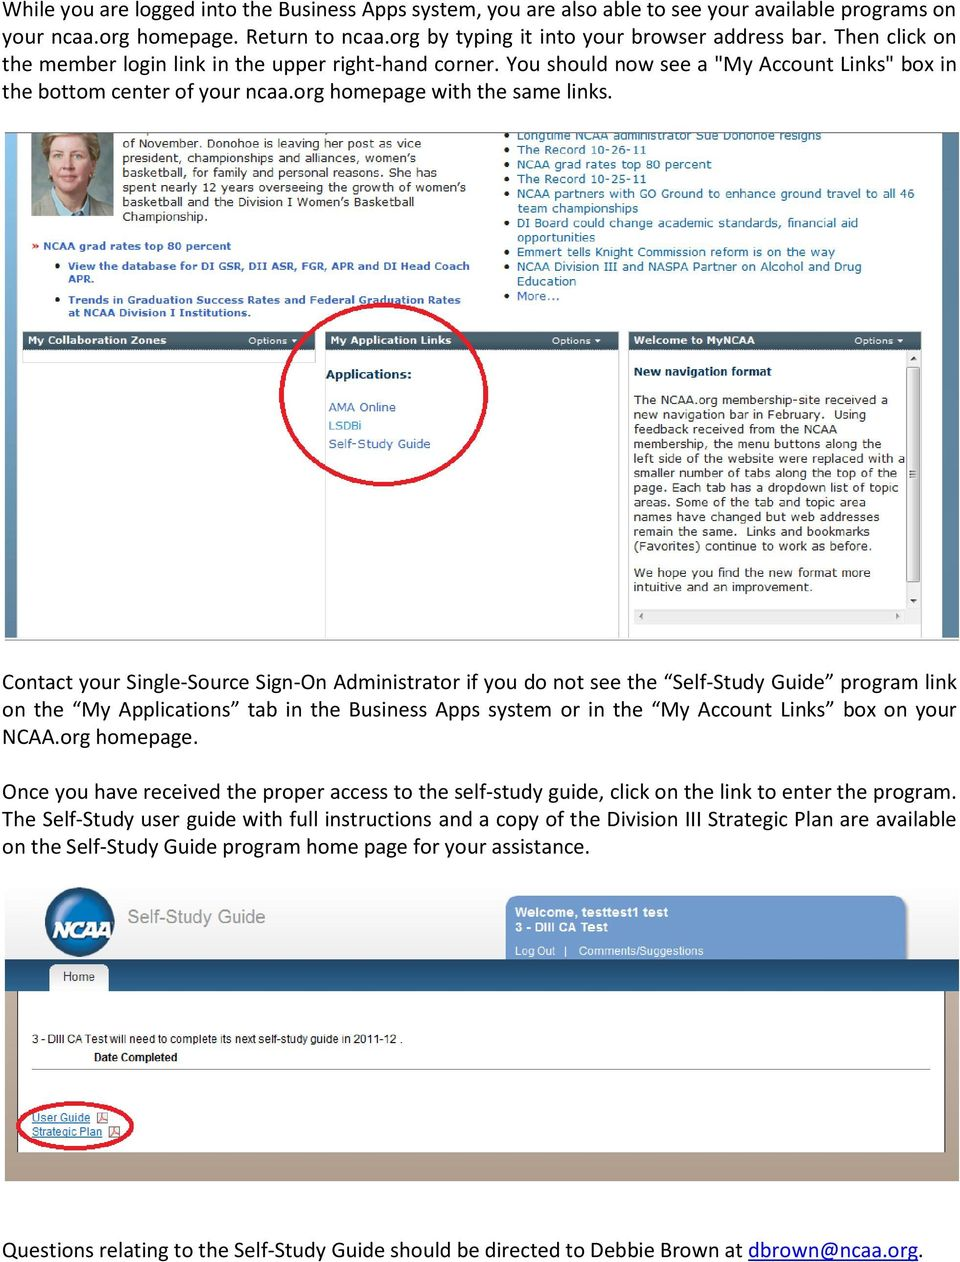 Contact your Single-Source Sign-On Administrator if you do not see the Self-Study Guide program link on the My Applications tab in the Business Apps system or in the My Account Links box on your NCAA.